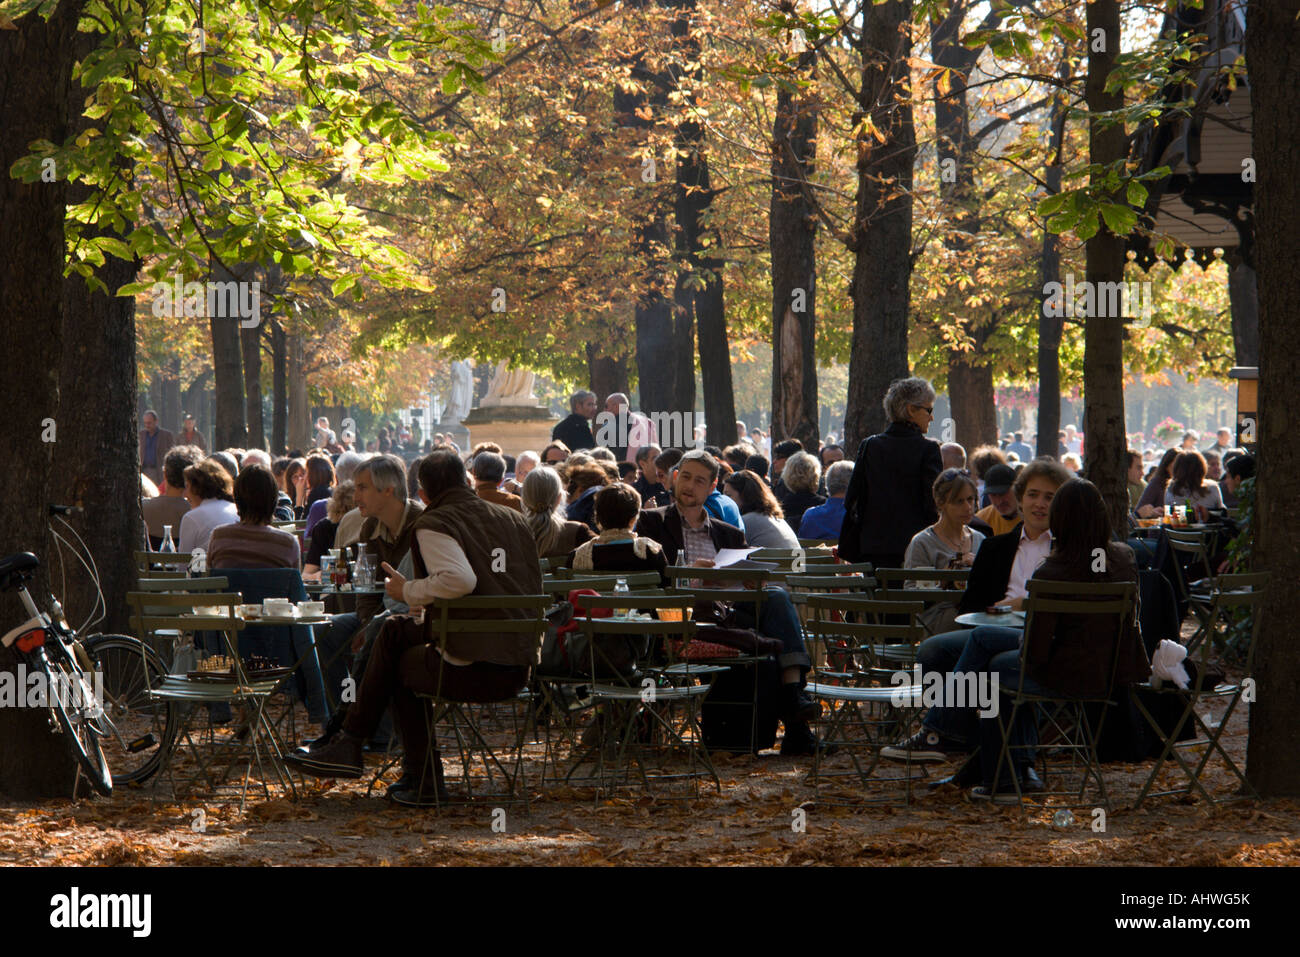 Outdoor cafe in jardin du luxembourg paris france stock for Cafe jardin du luxembourg